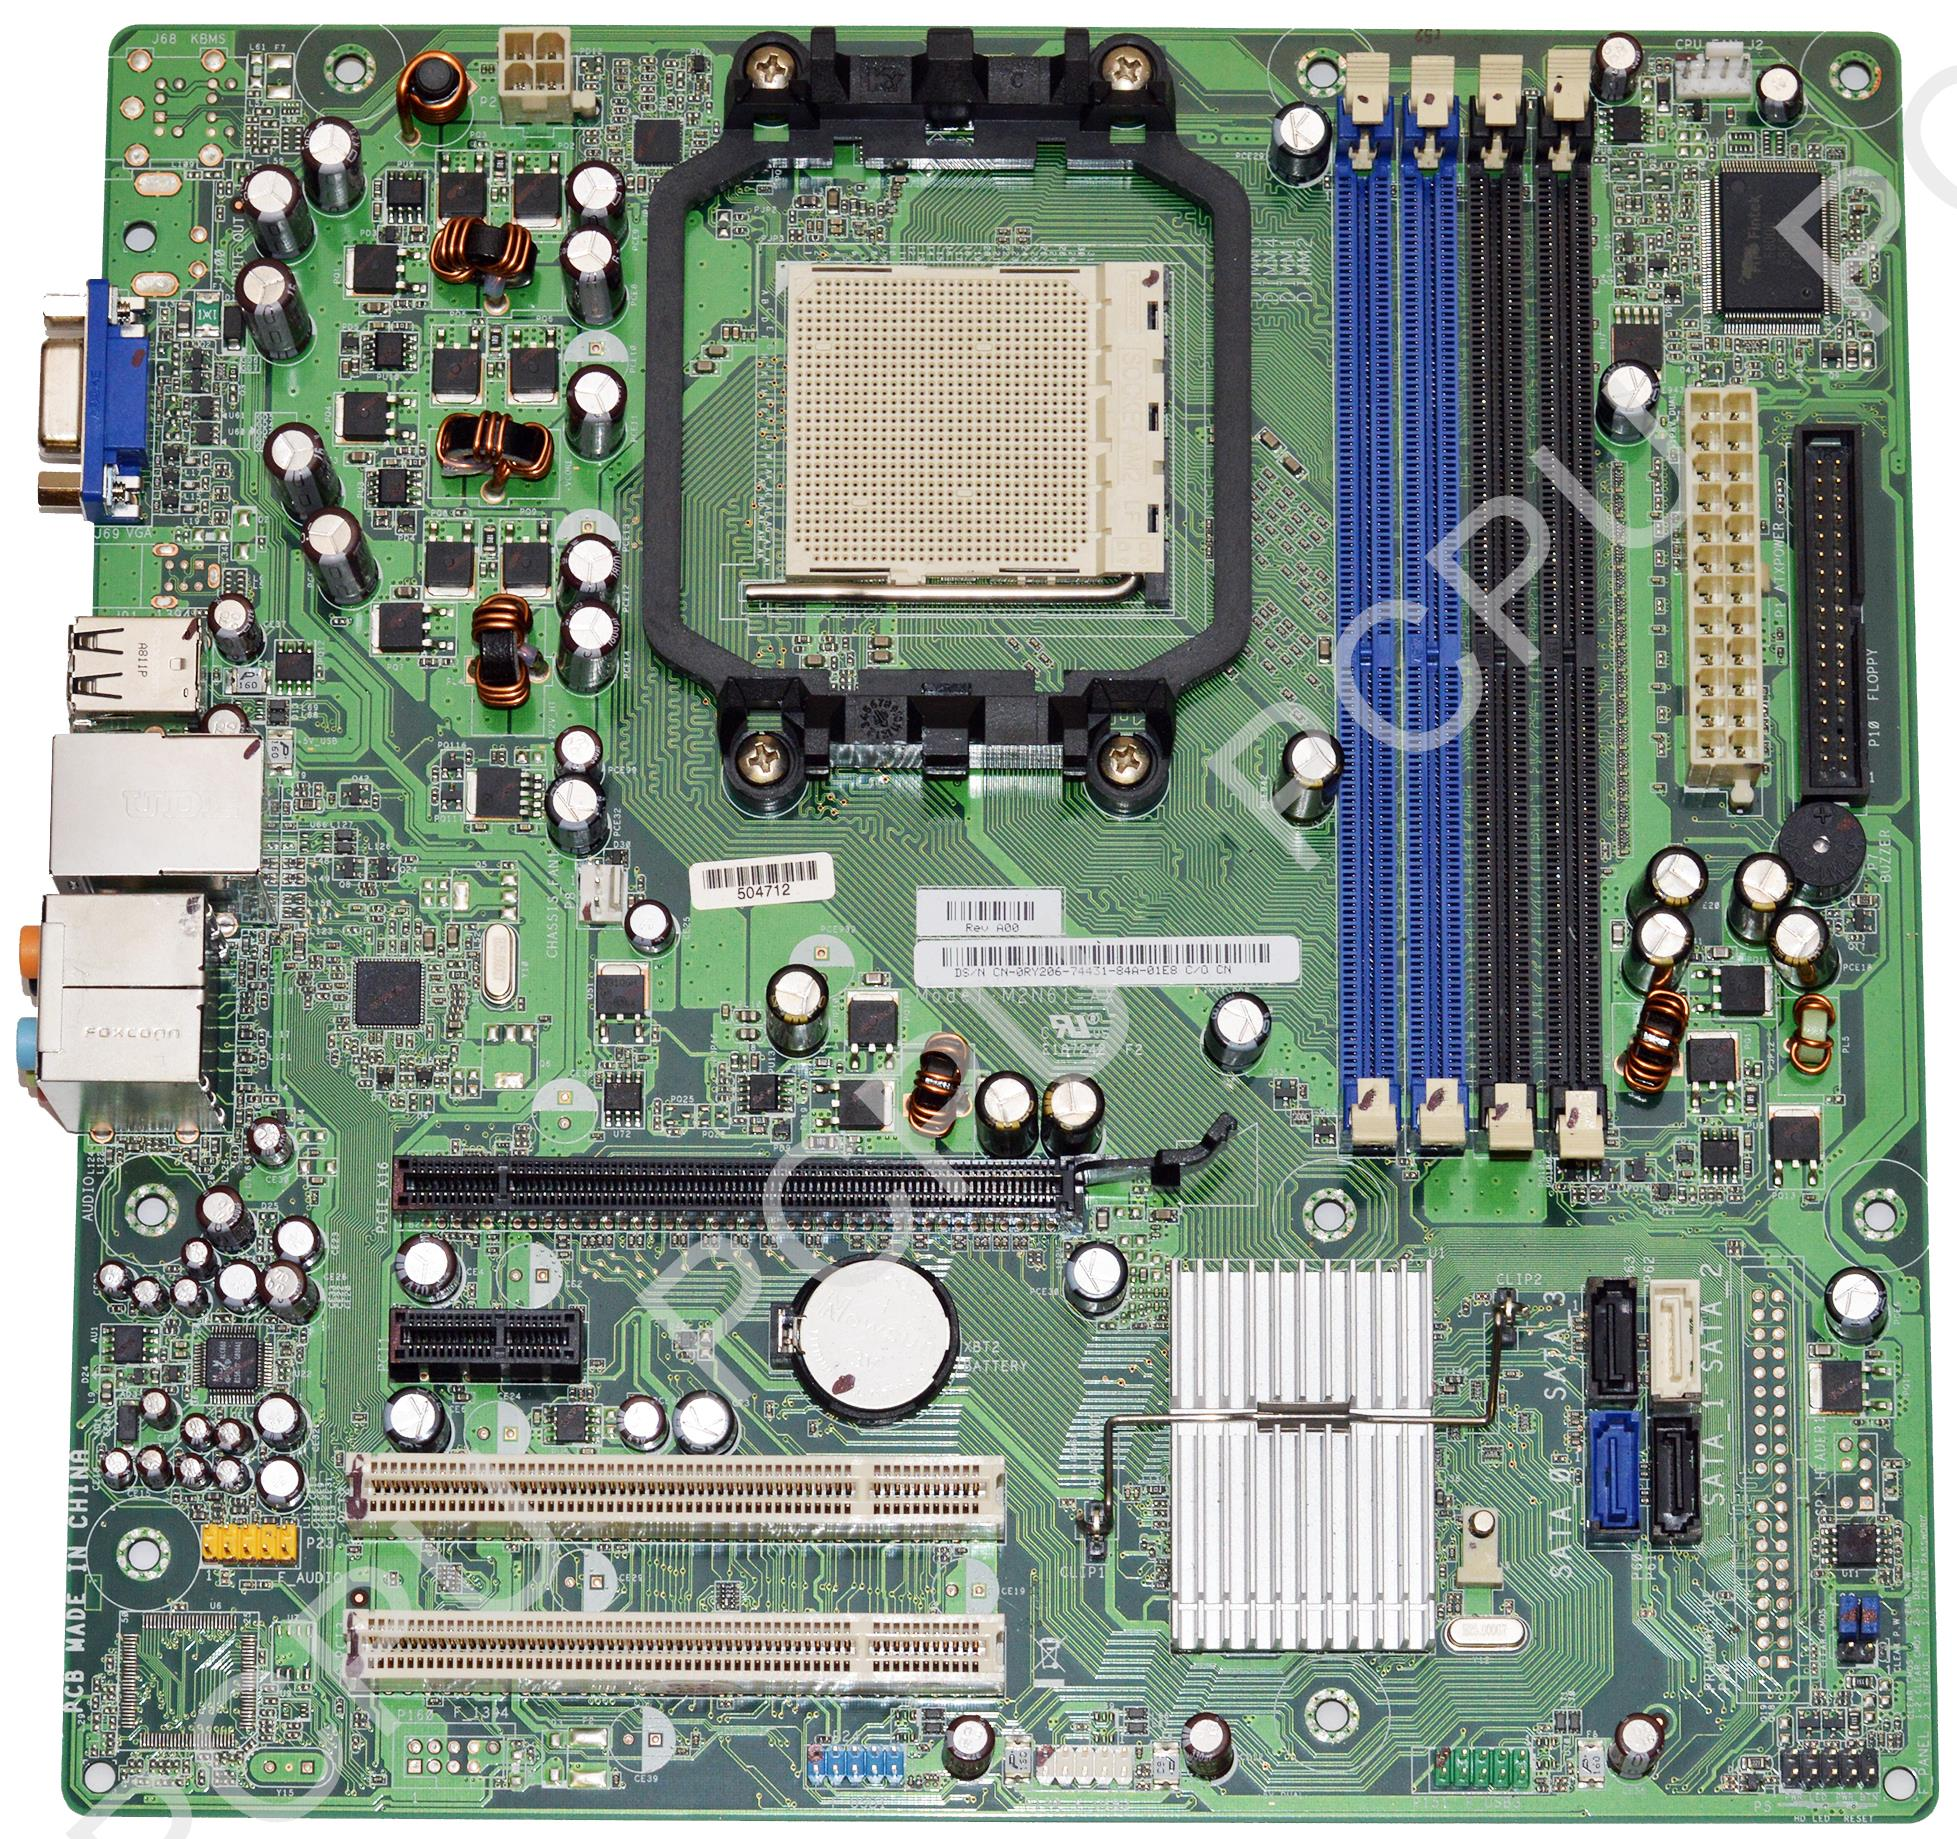 RY206 Dell Inspiron 531 AMD Motherboard